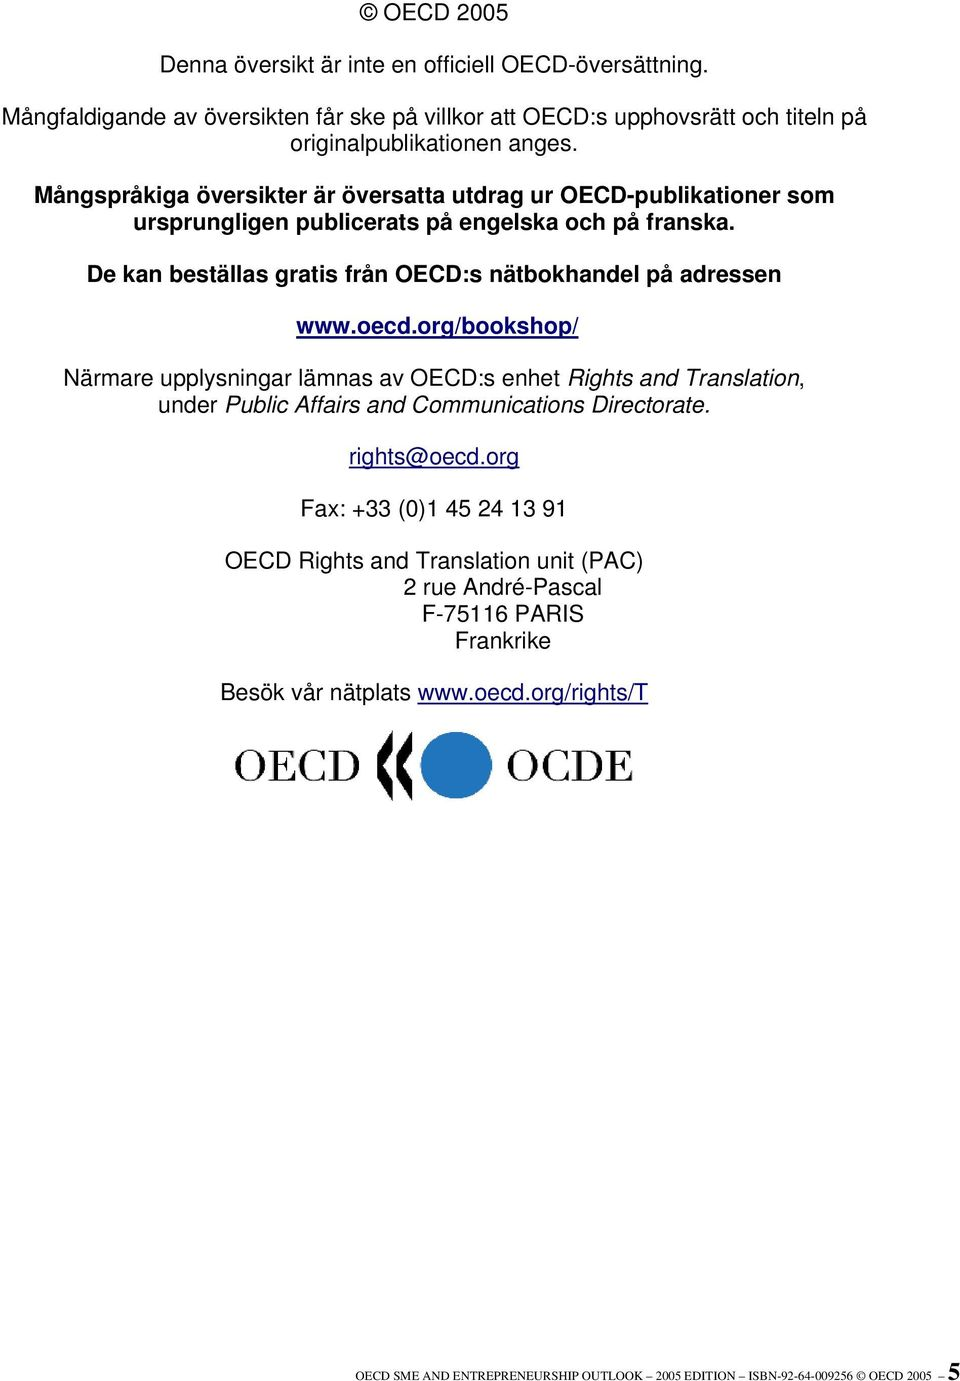 oecd.org/bookshop/ Närmare upplysningar lämnas av OECD:s enhet Rights and Translation, under Public Affairs and Communications Directorate. rights@oecd.